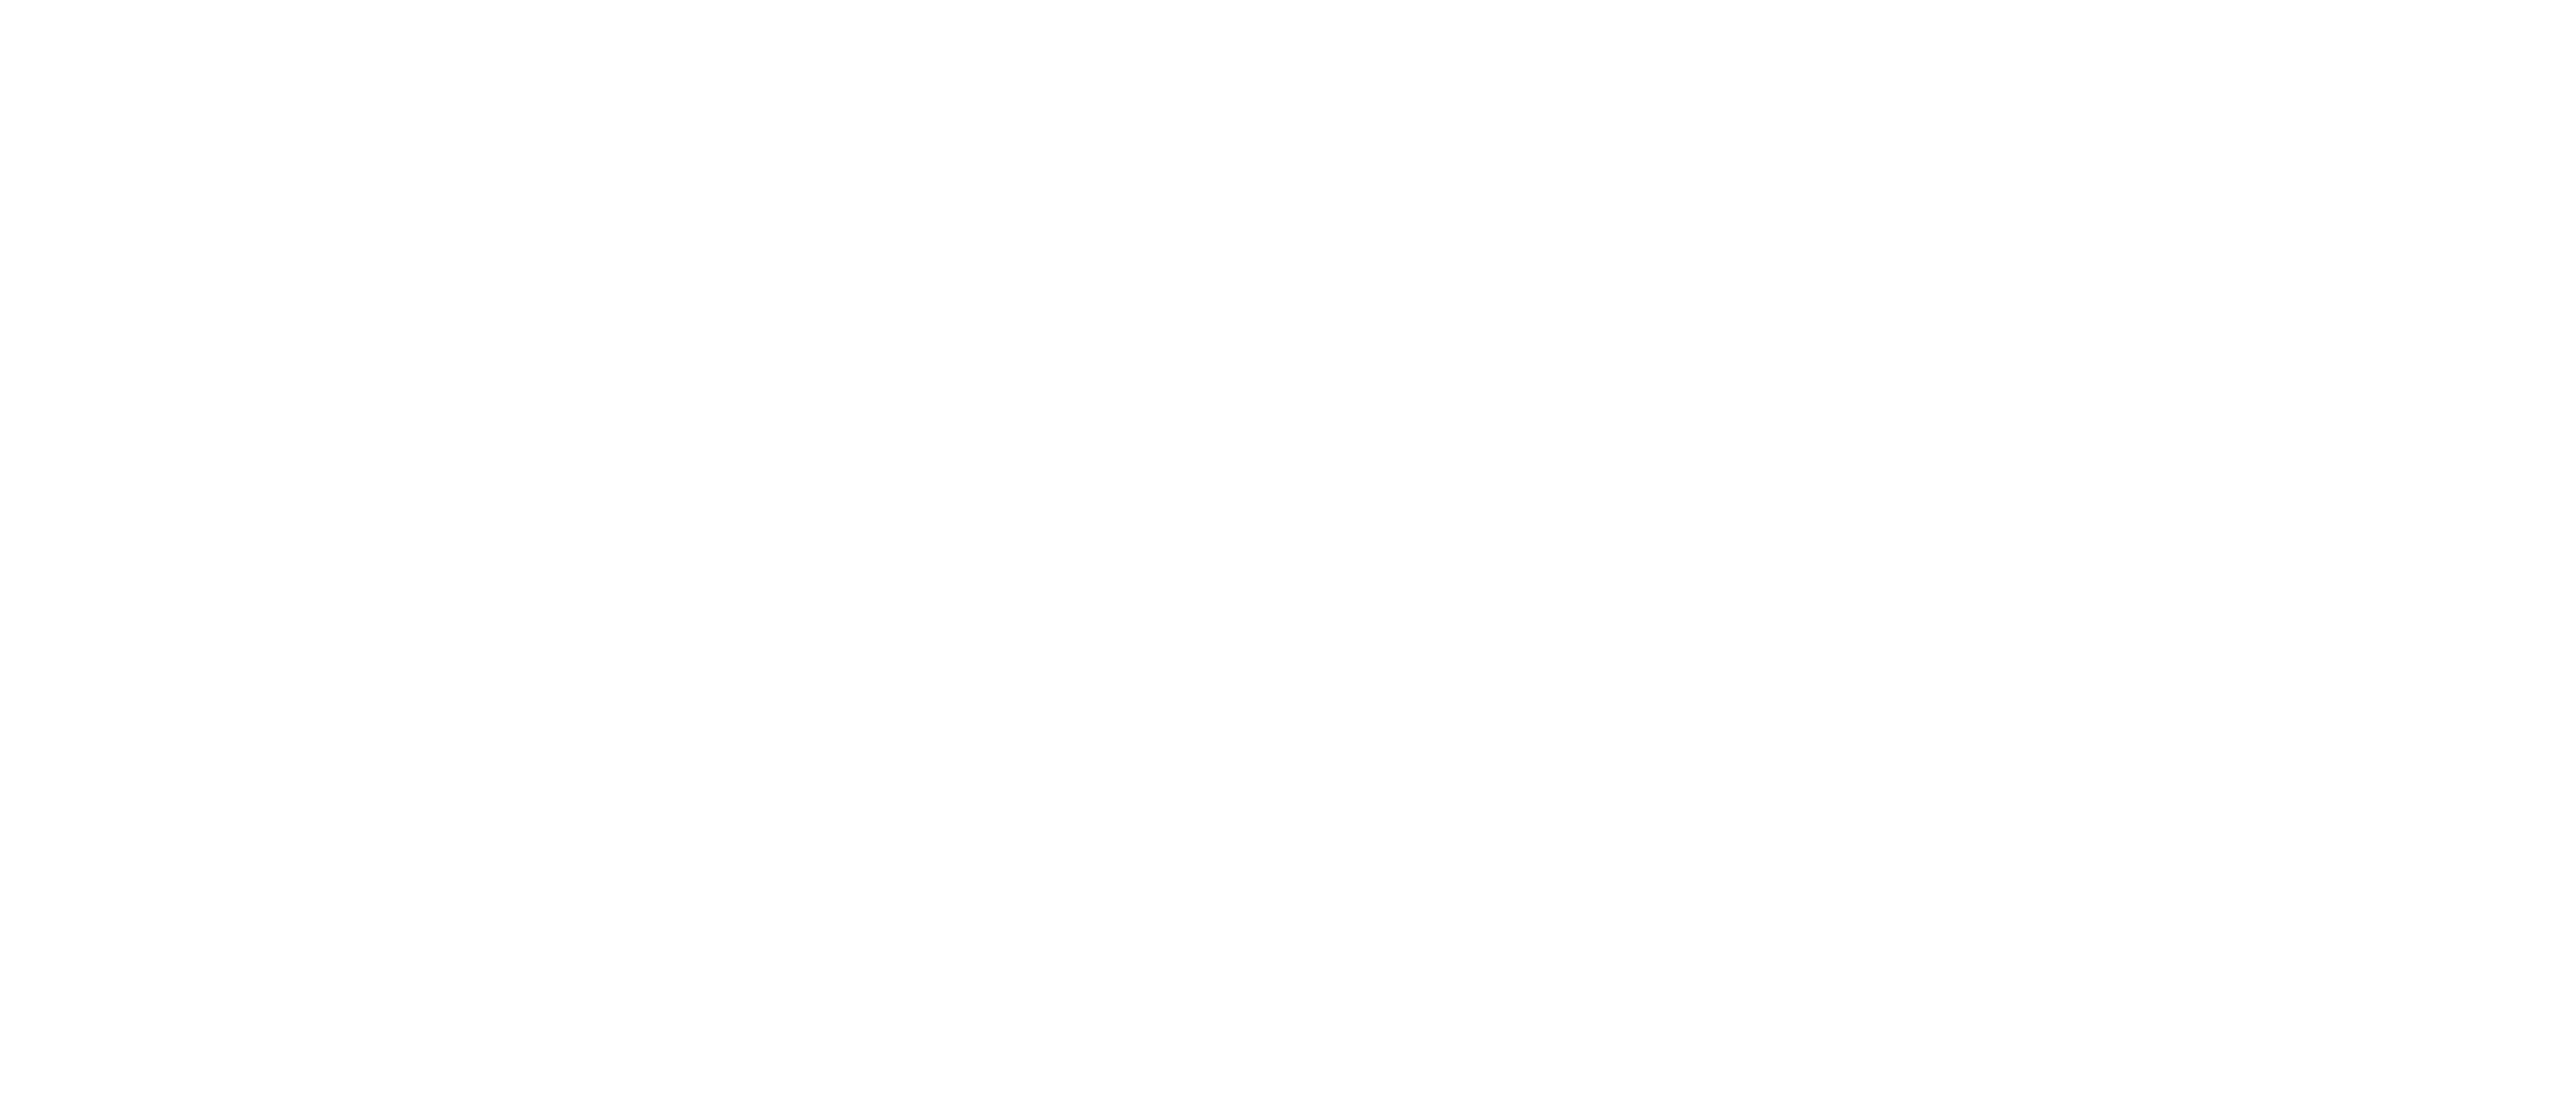 Total space producer & planner